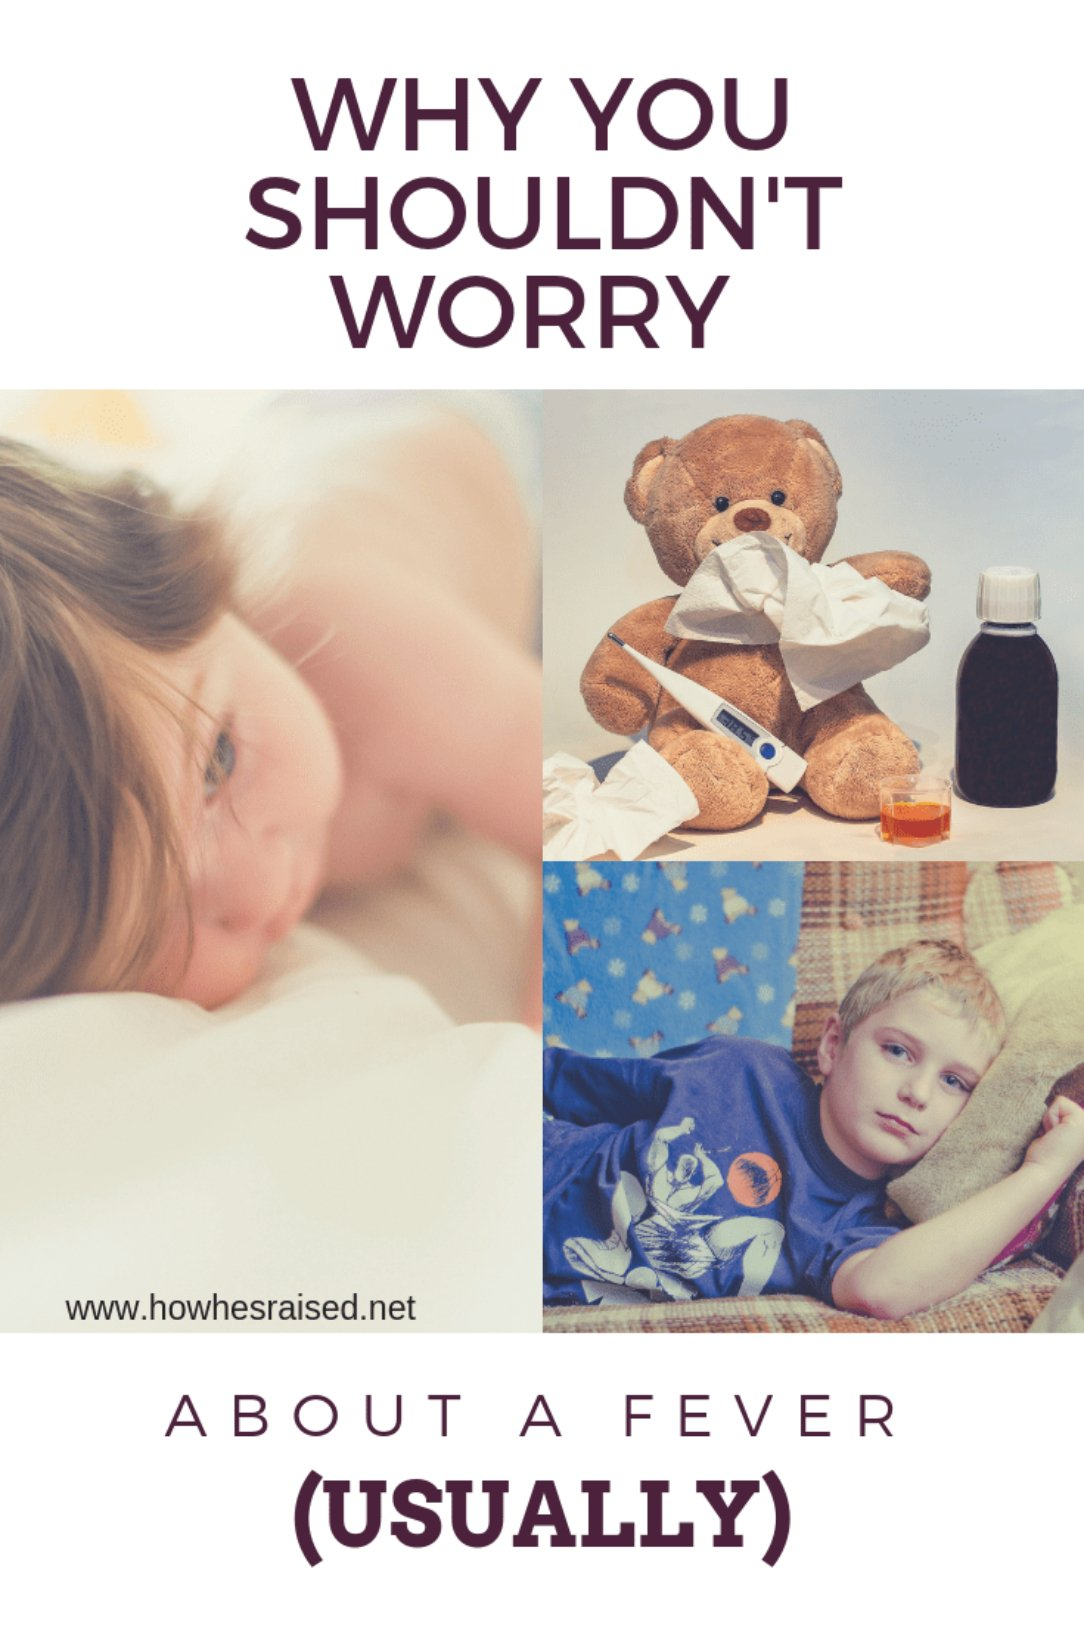 Why You Shouldn't Worry About a Fever (usually!)